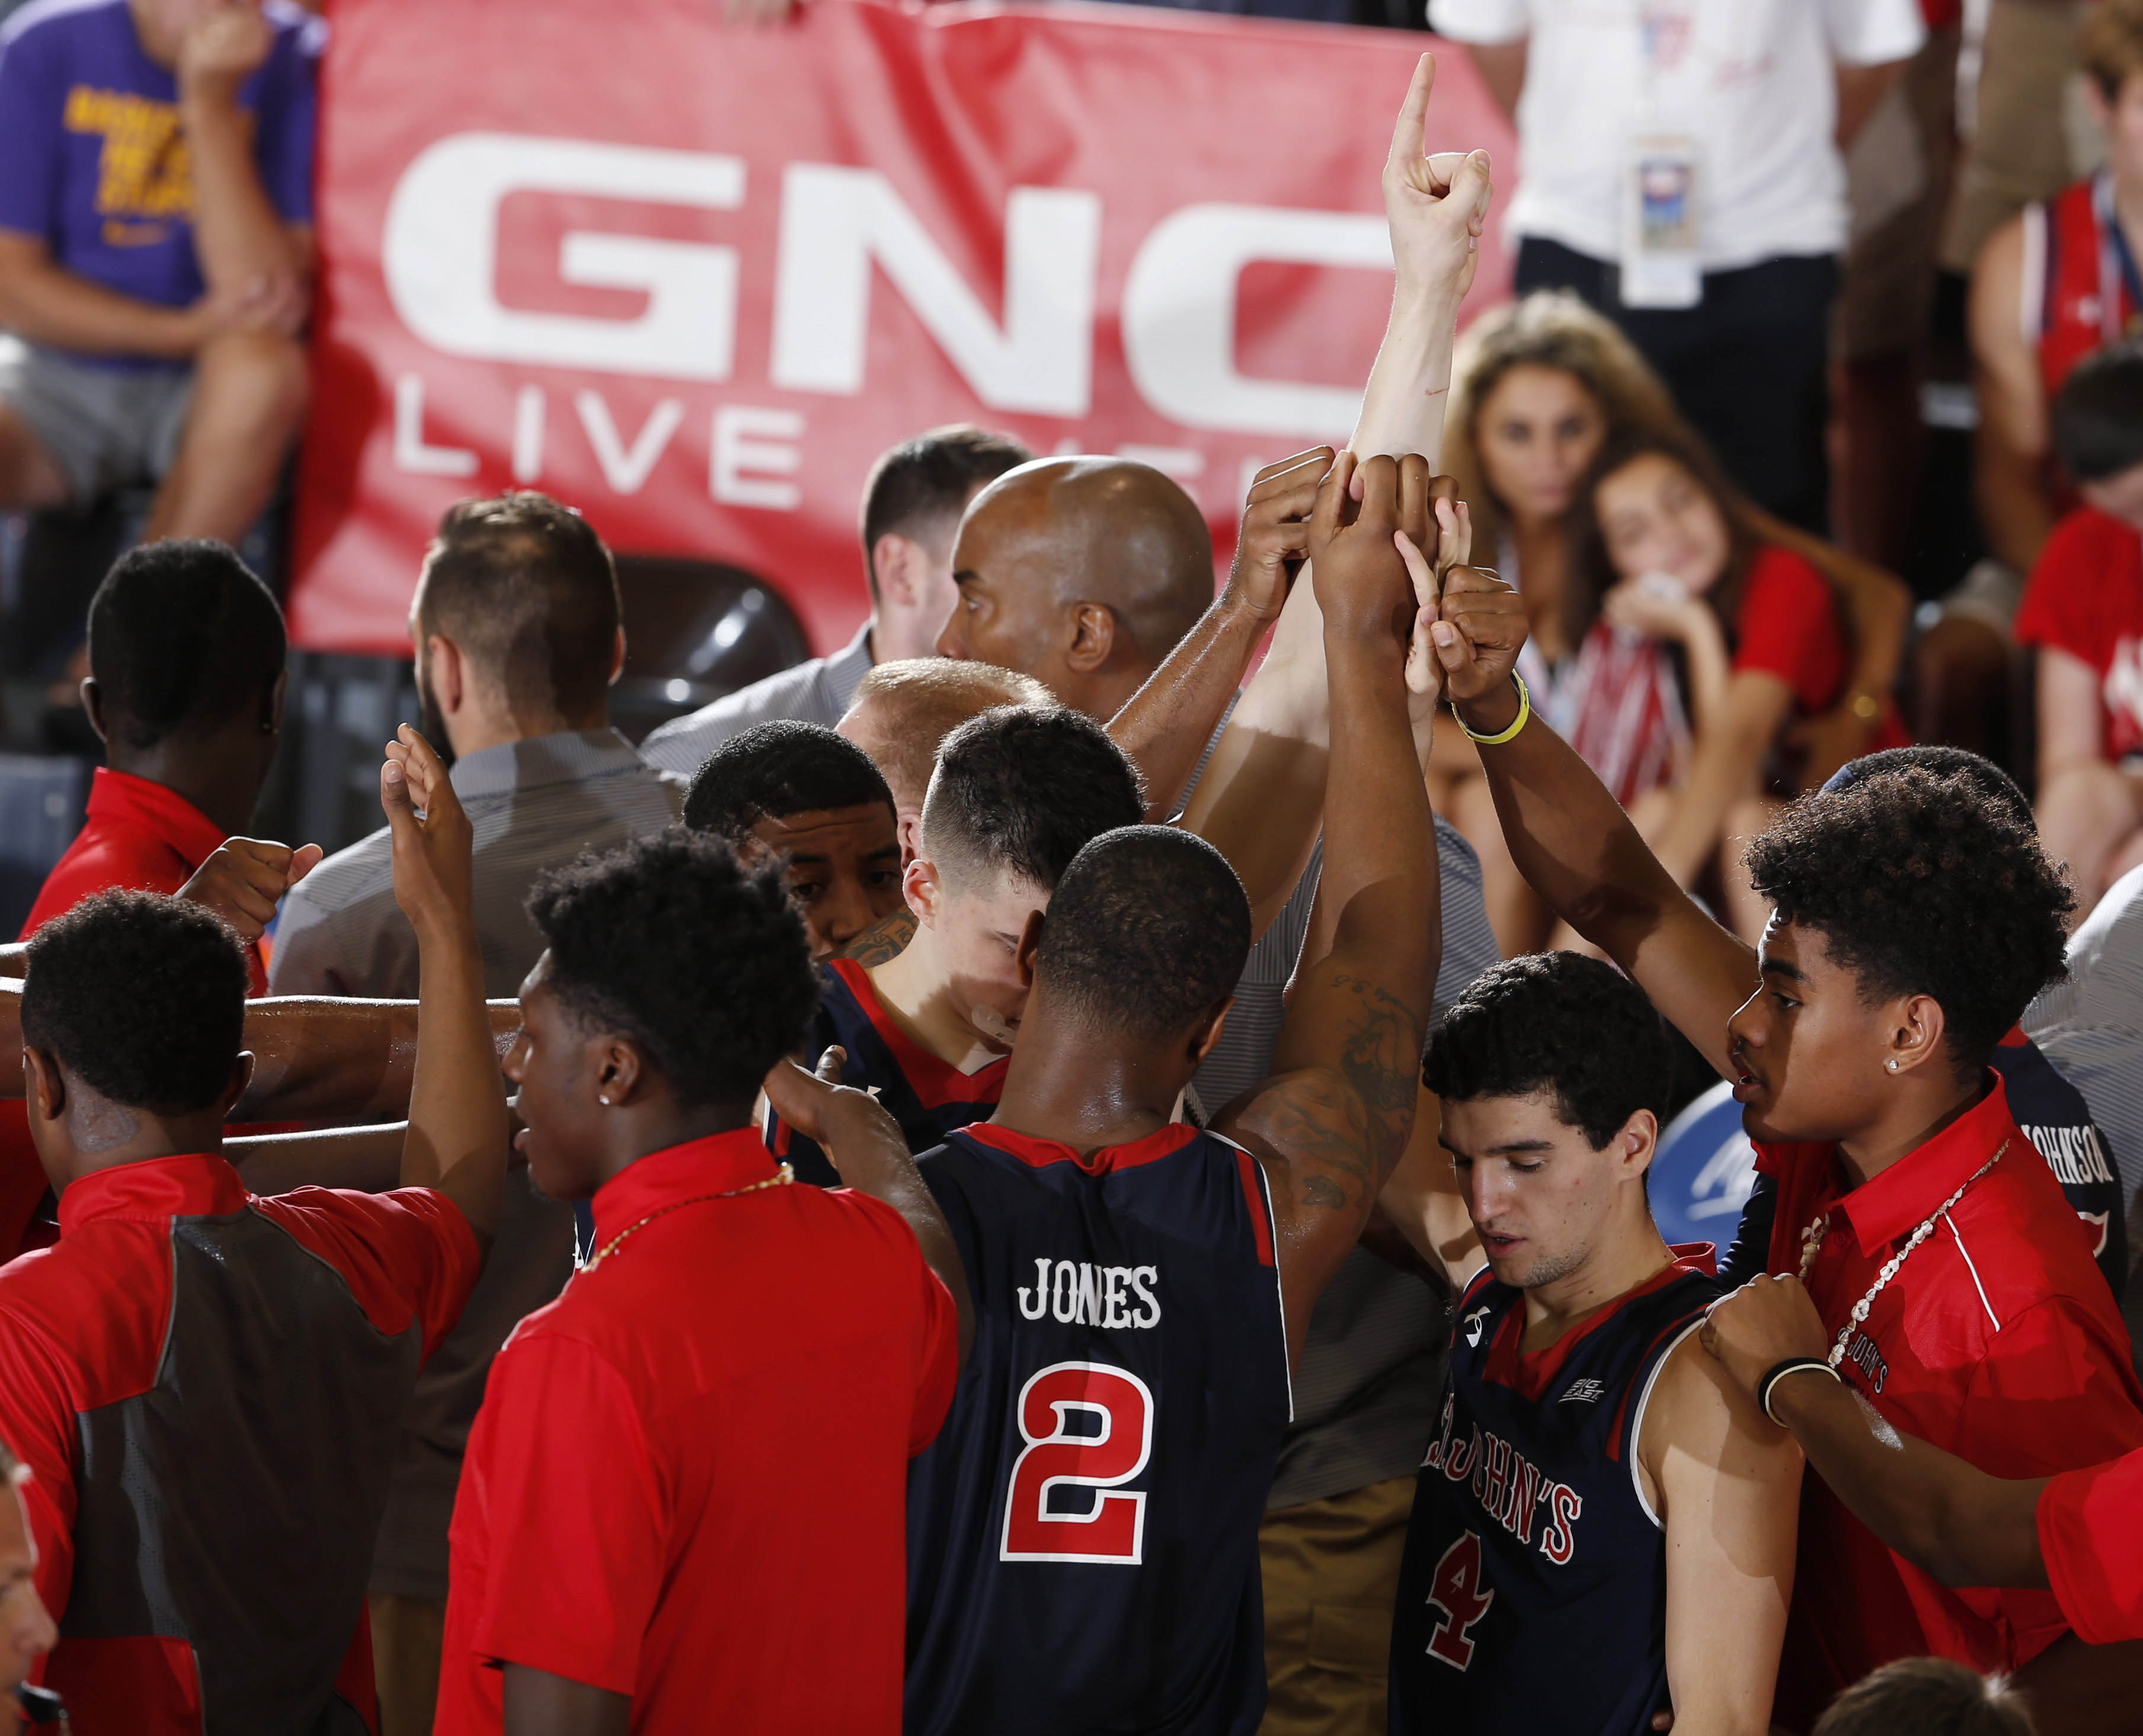 St. John's looks to defeat New York city rivals, Fordham.